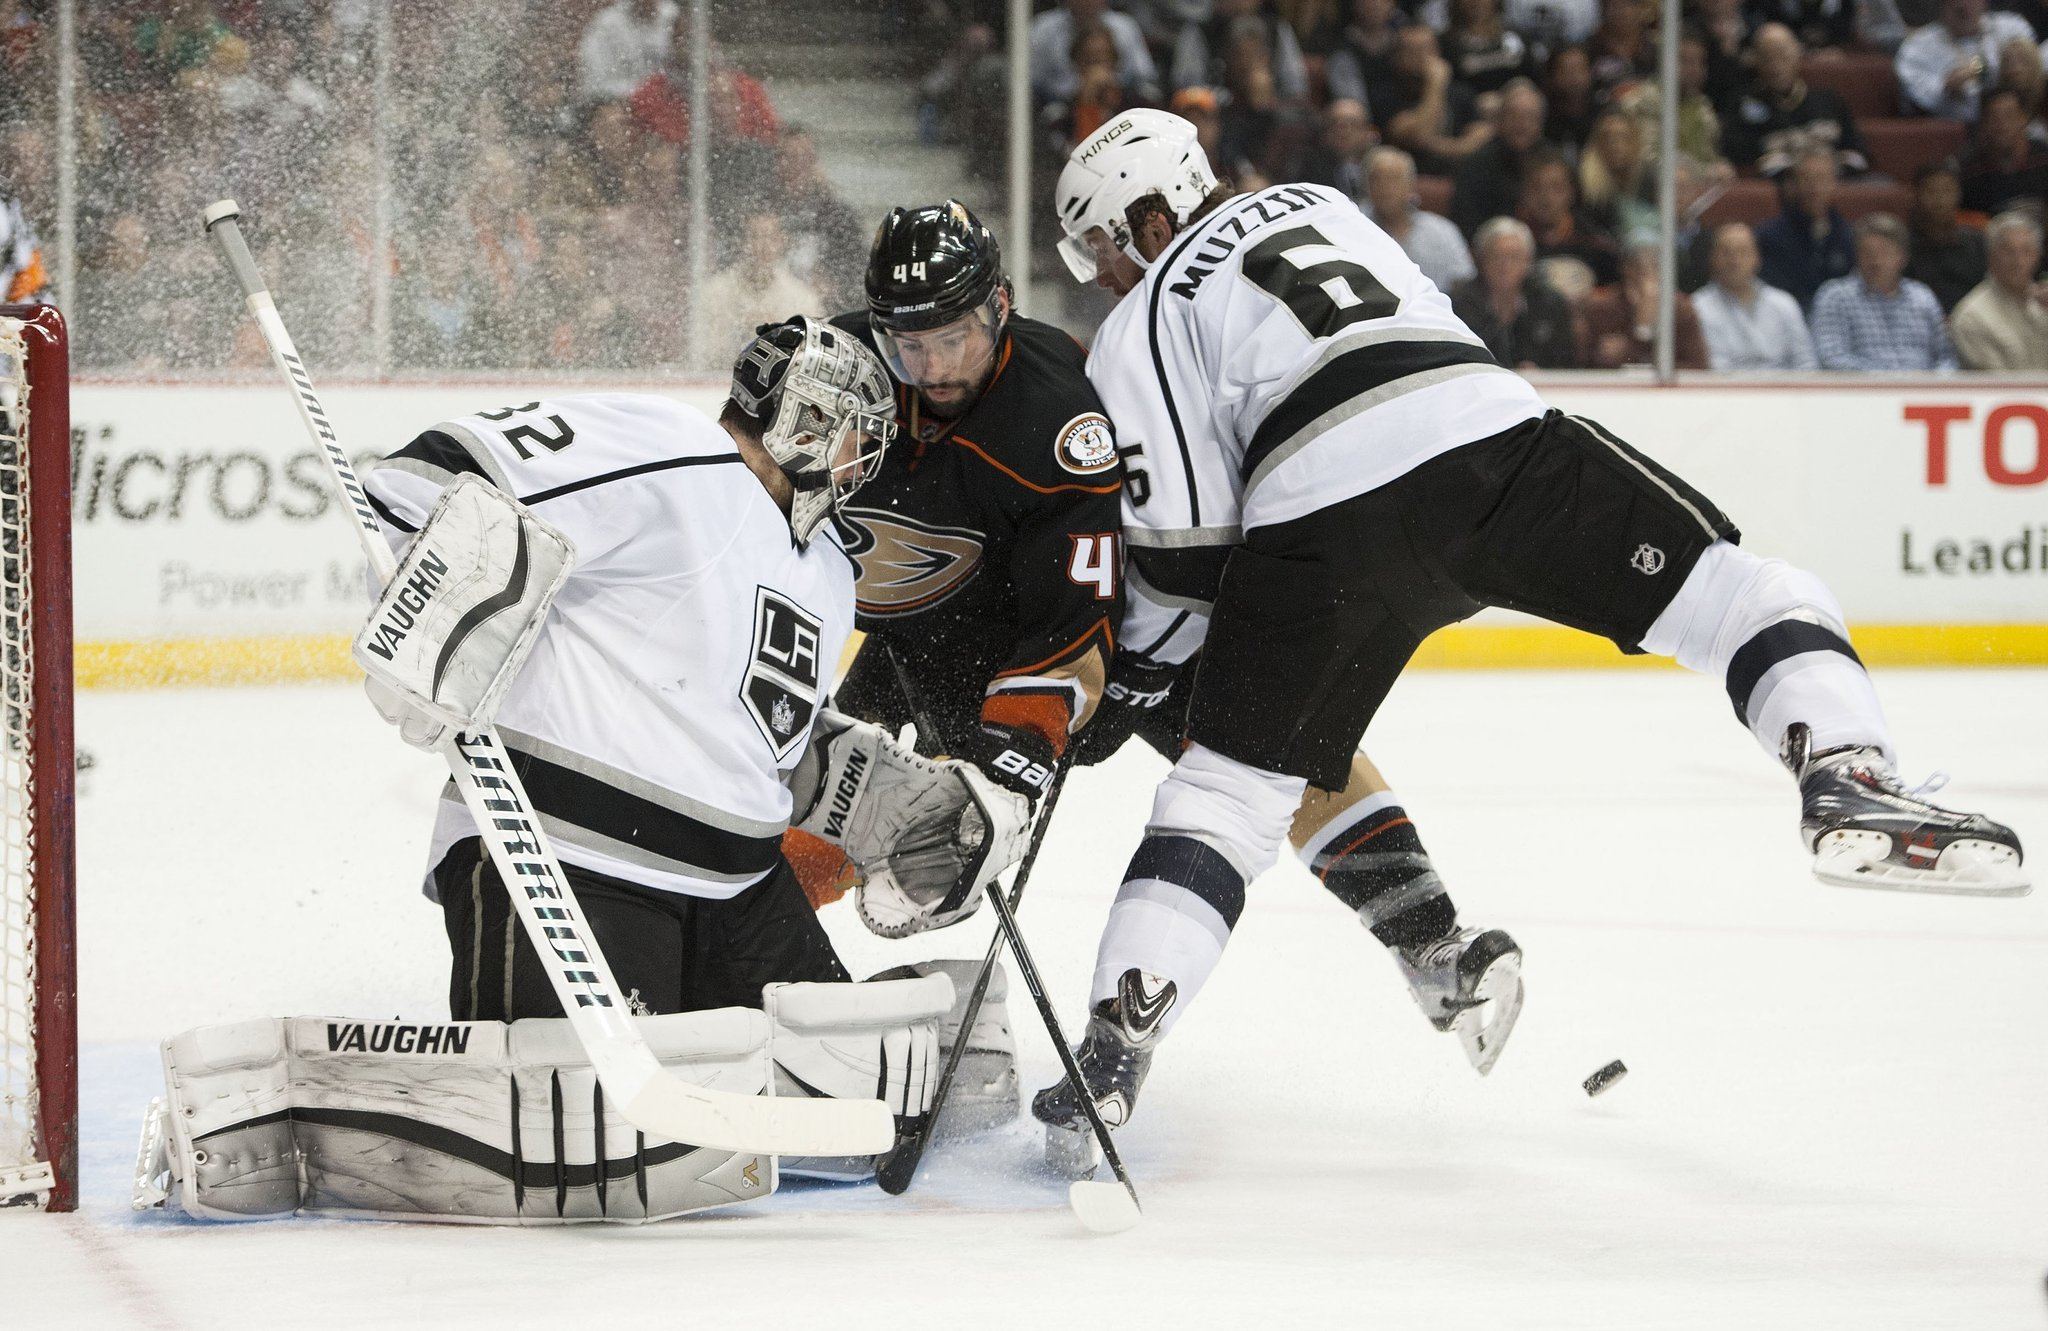 What we learned from the Kings' 3-2 overtime loss to the Ducks